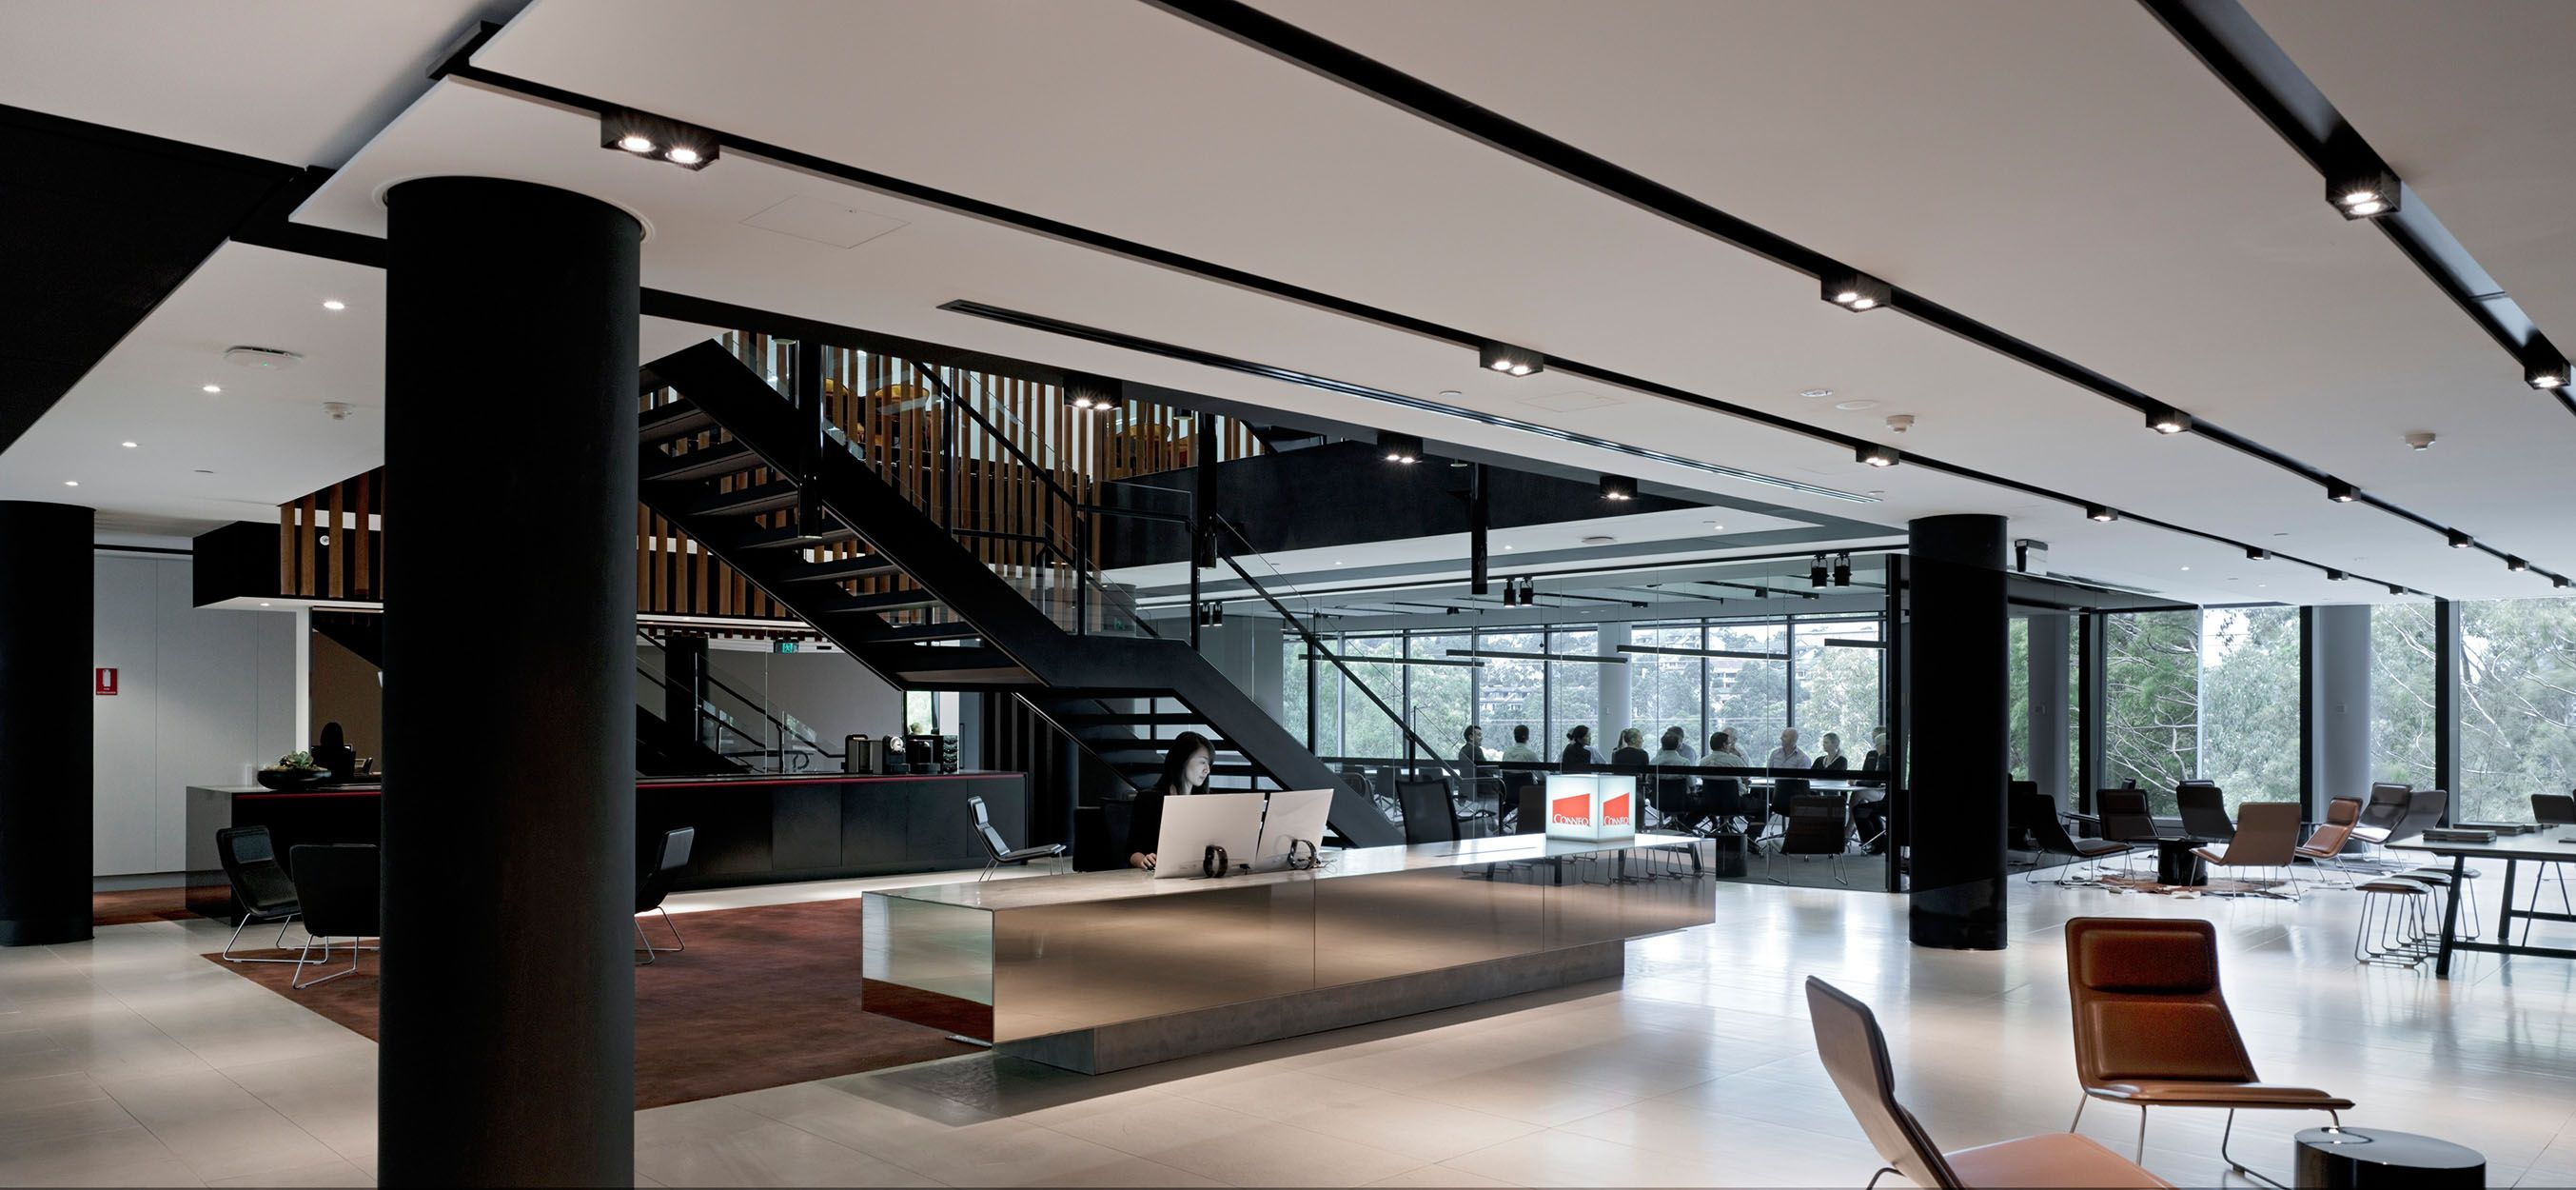 smart office interiors. Bates Smart Of Australia Lead The Design New Conneq Office Space. A Little From Their Description: Conneq\u0027s Offices Were Designed Around T Interiors M